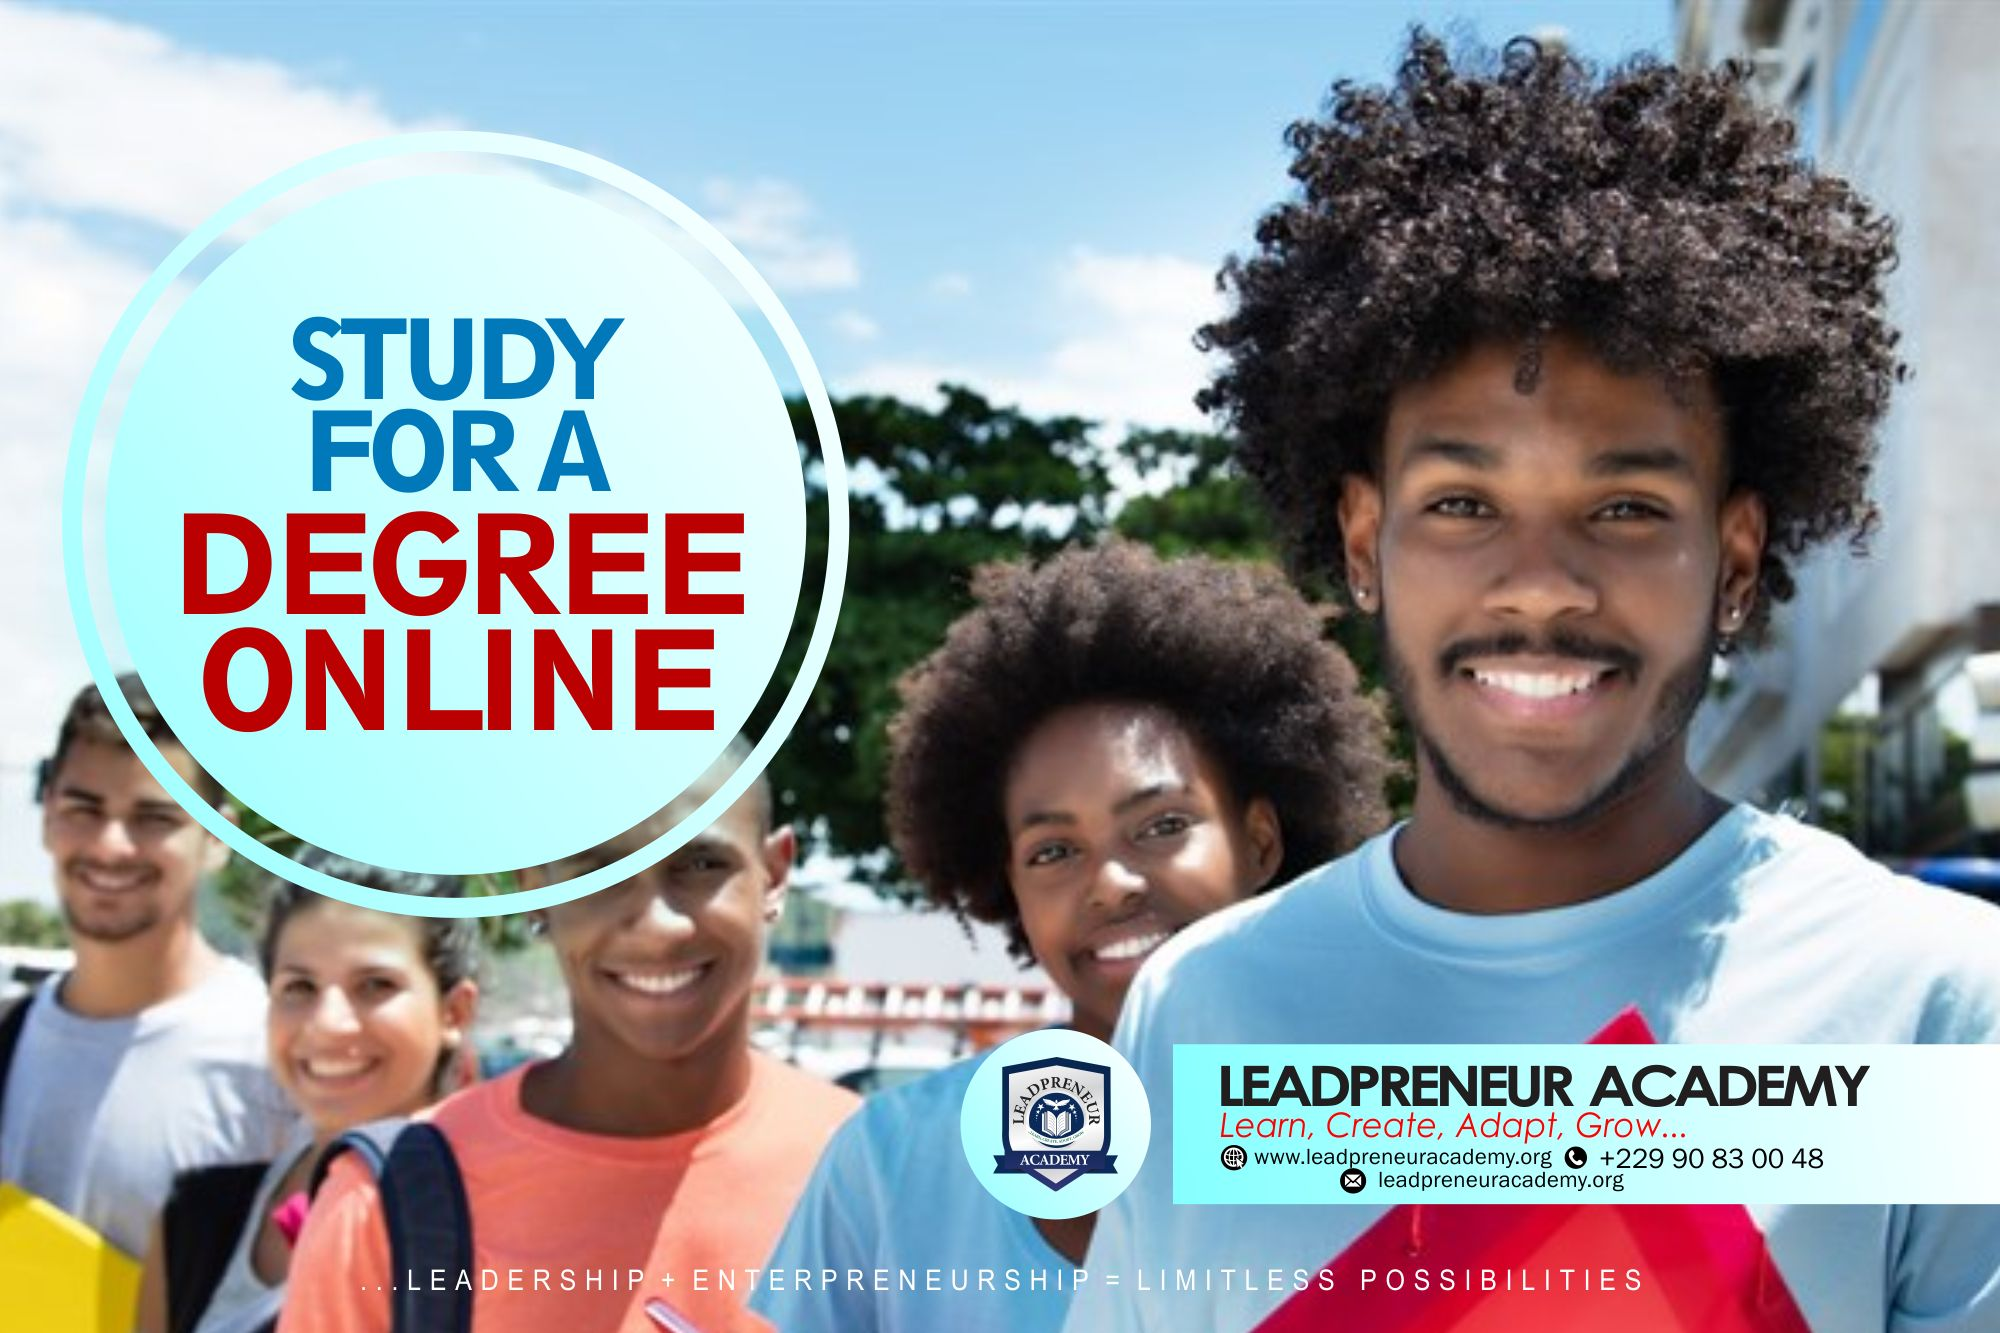 online degree leadpreneur academy